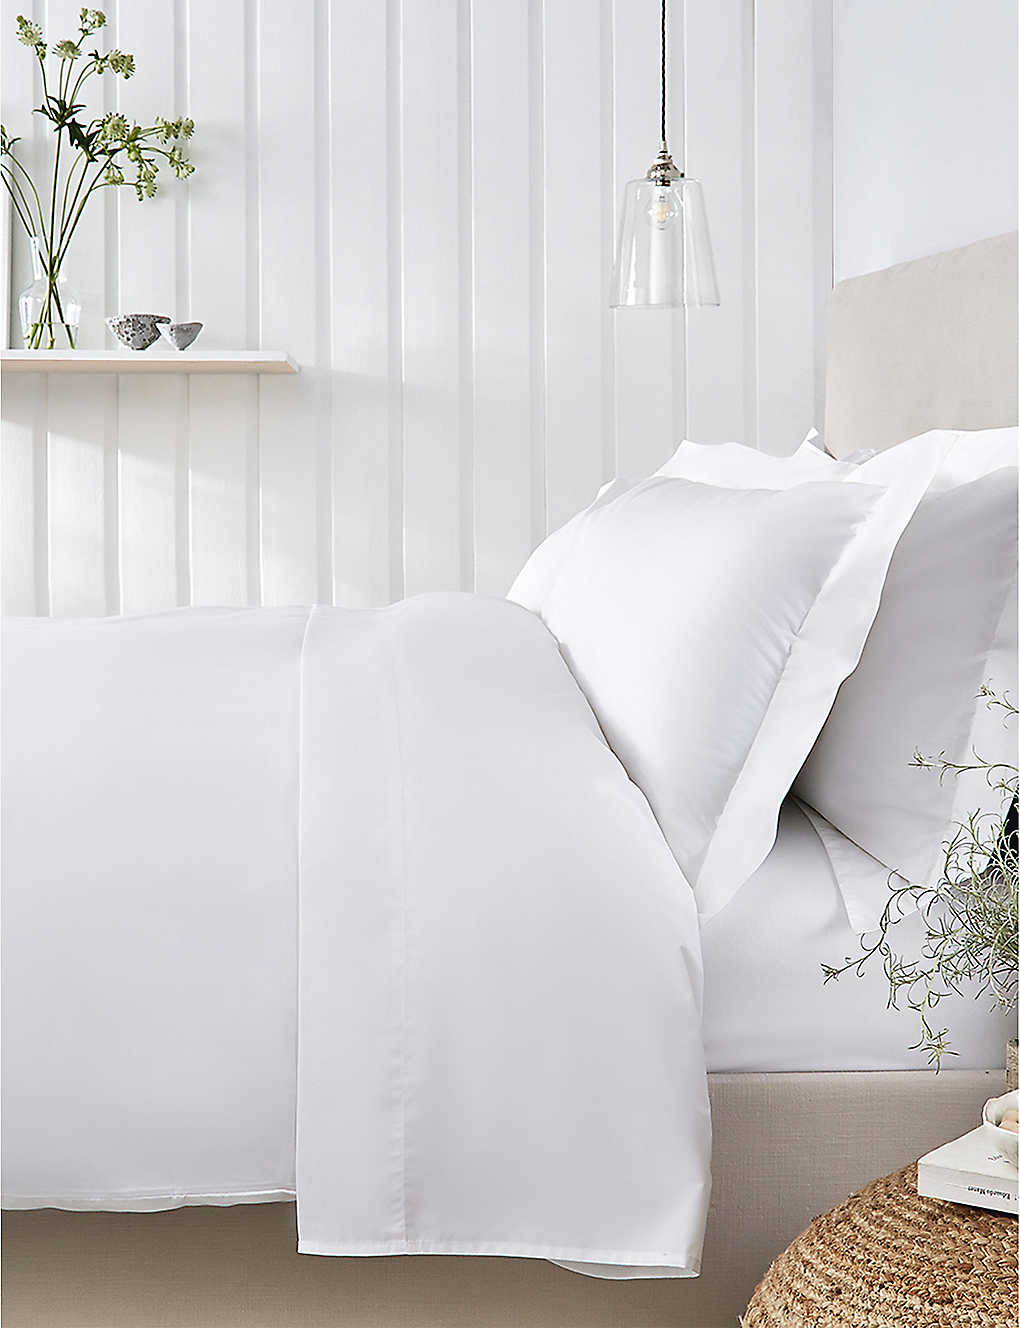 THE WHITE COMPANY: Essentials egyptian-cotton king size duvet cover 225cm x 220cm